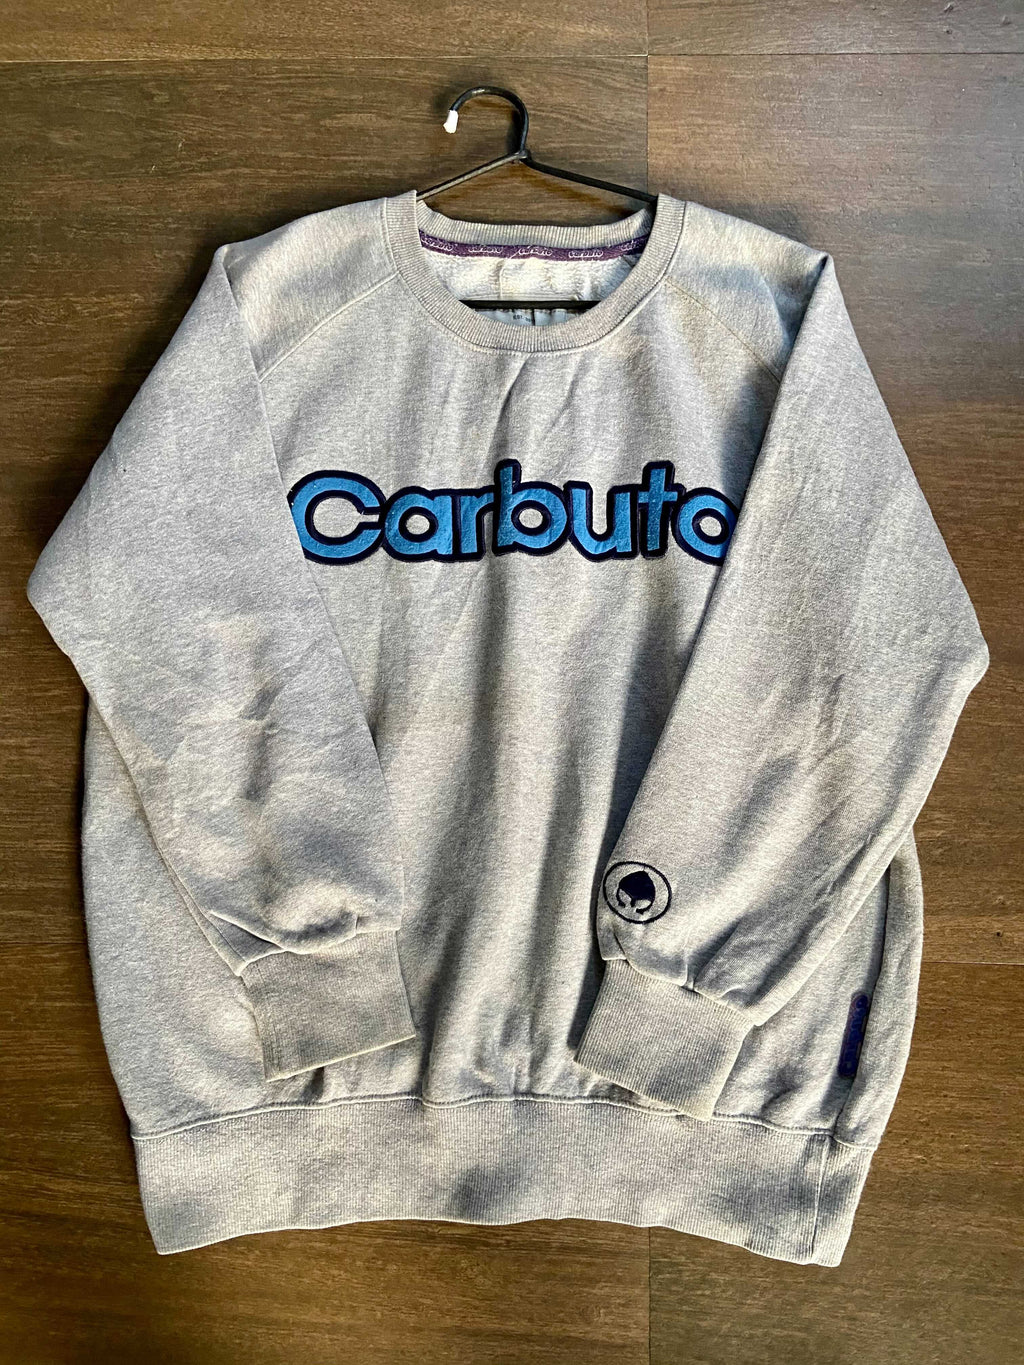 Vintage Carbuto New York Sweatshirt